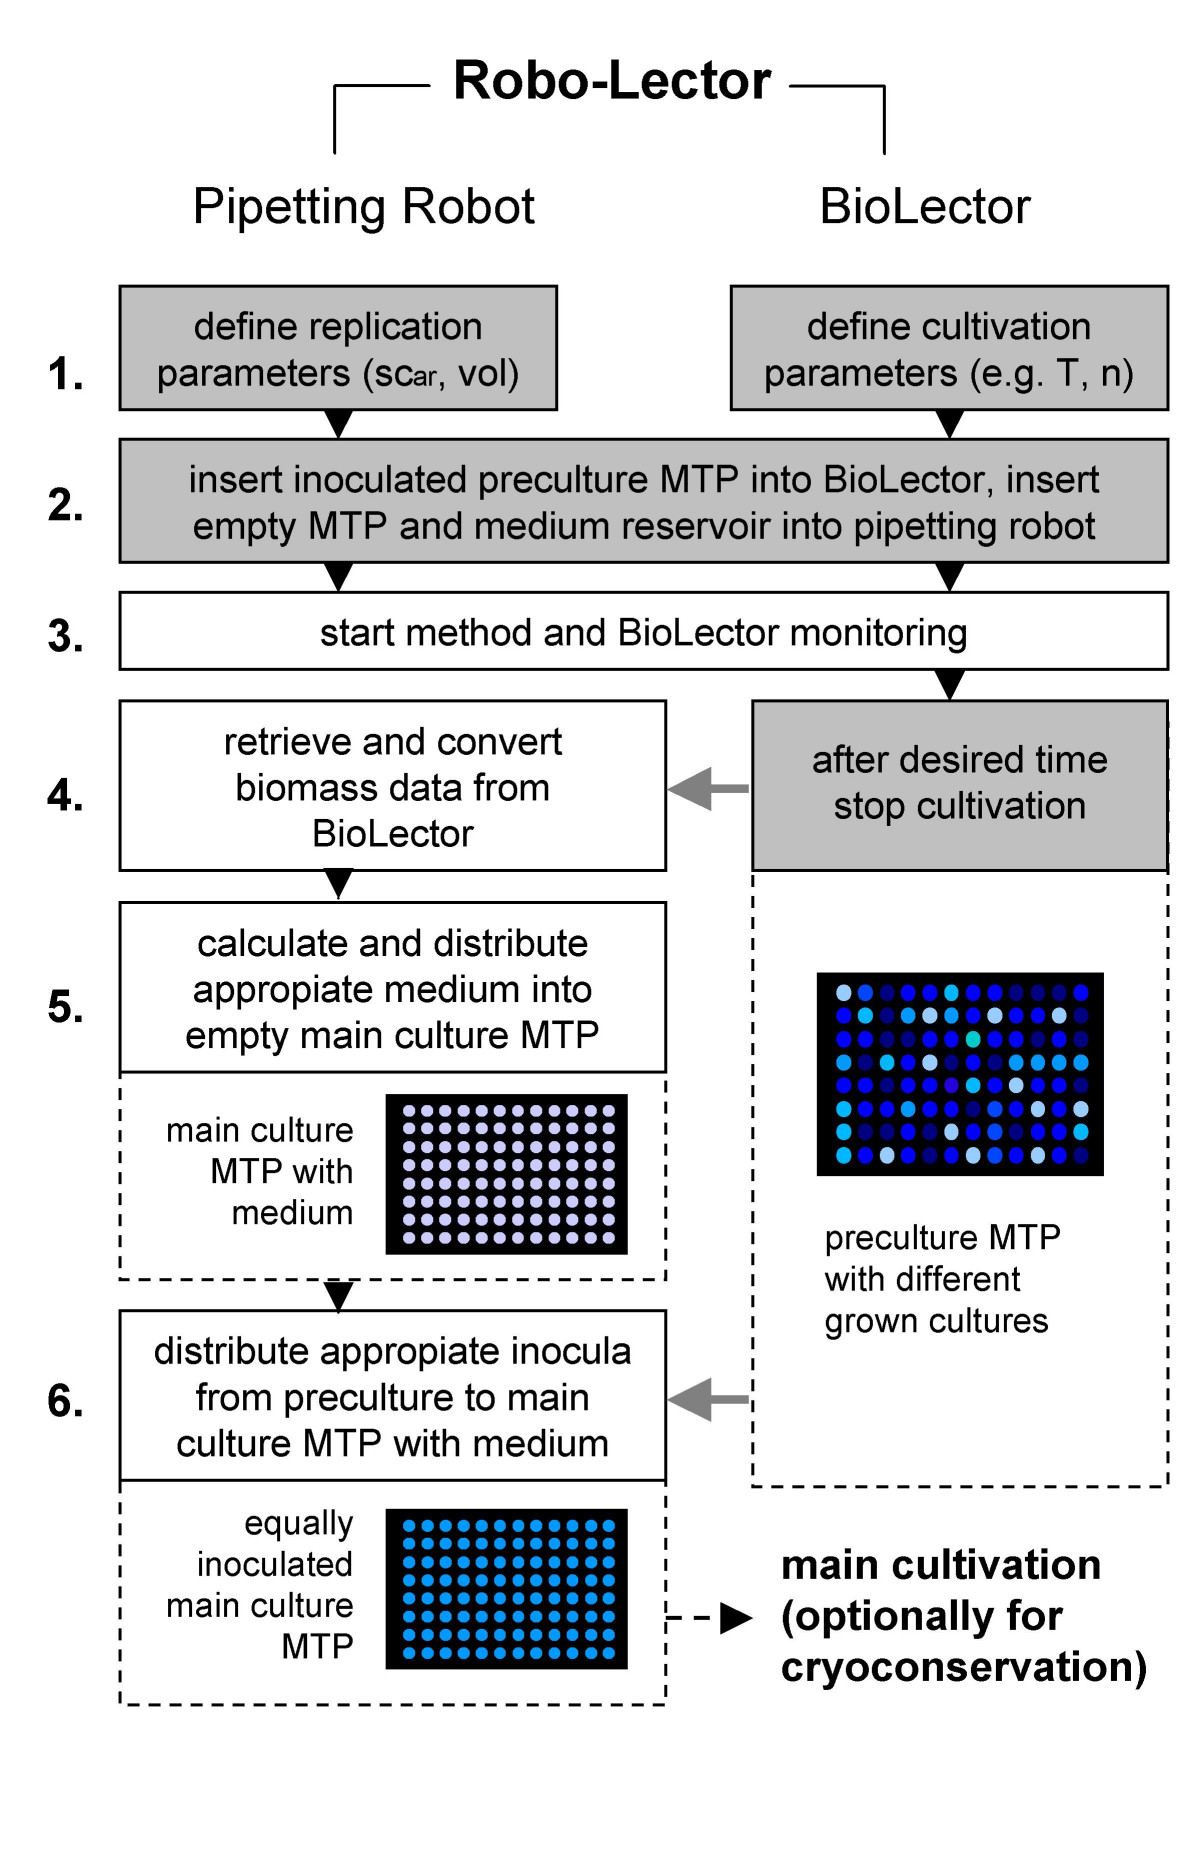 https://static-content.springer.com/image/art%3A10.1186%2F1475-2859-8-42/MediaObjects/12934_2009_Article_362_Fig4_HTML.jpg